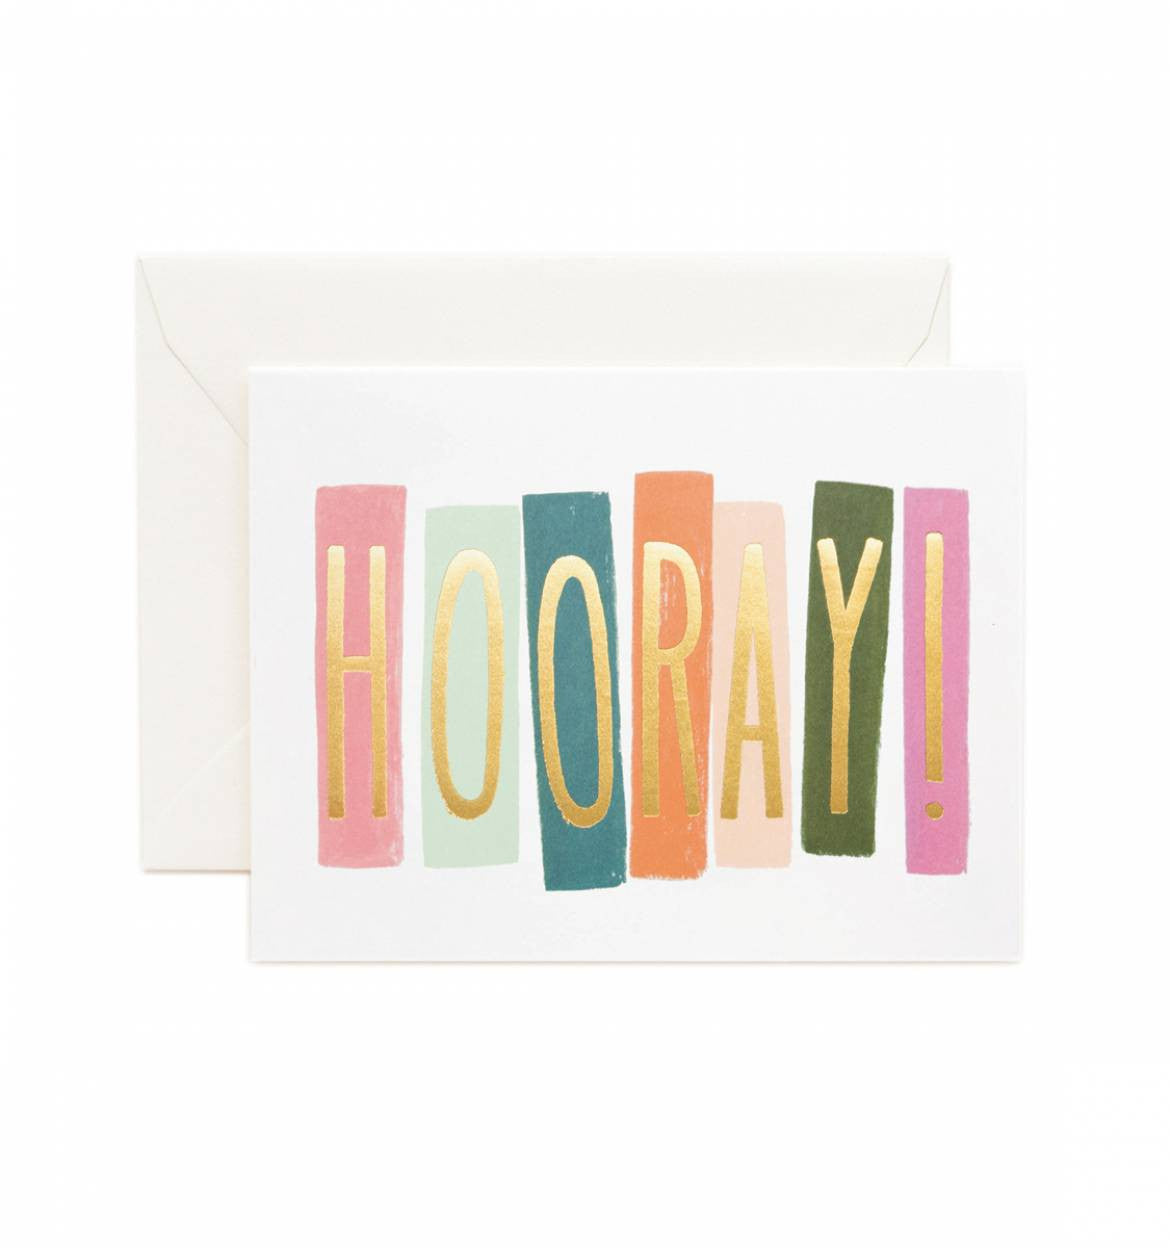 Hooray! Single Greeting Card